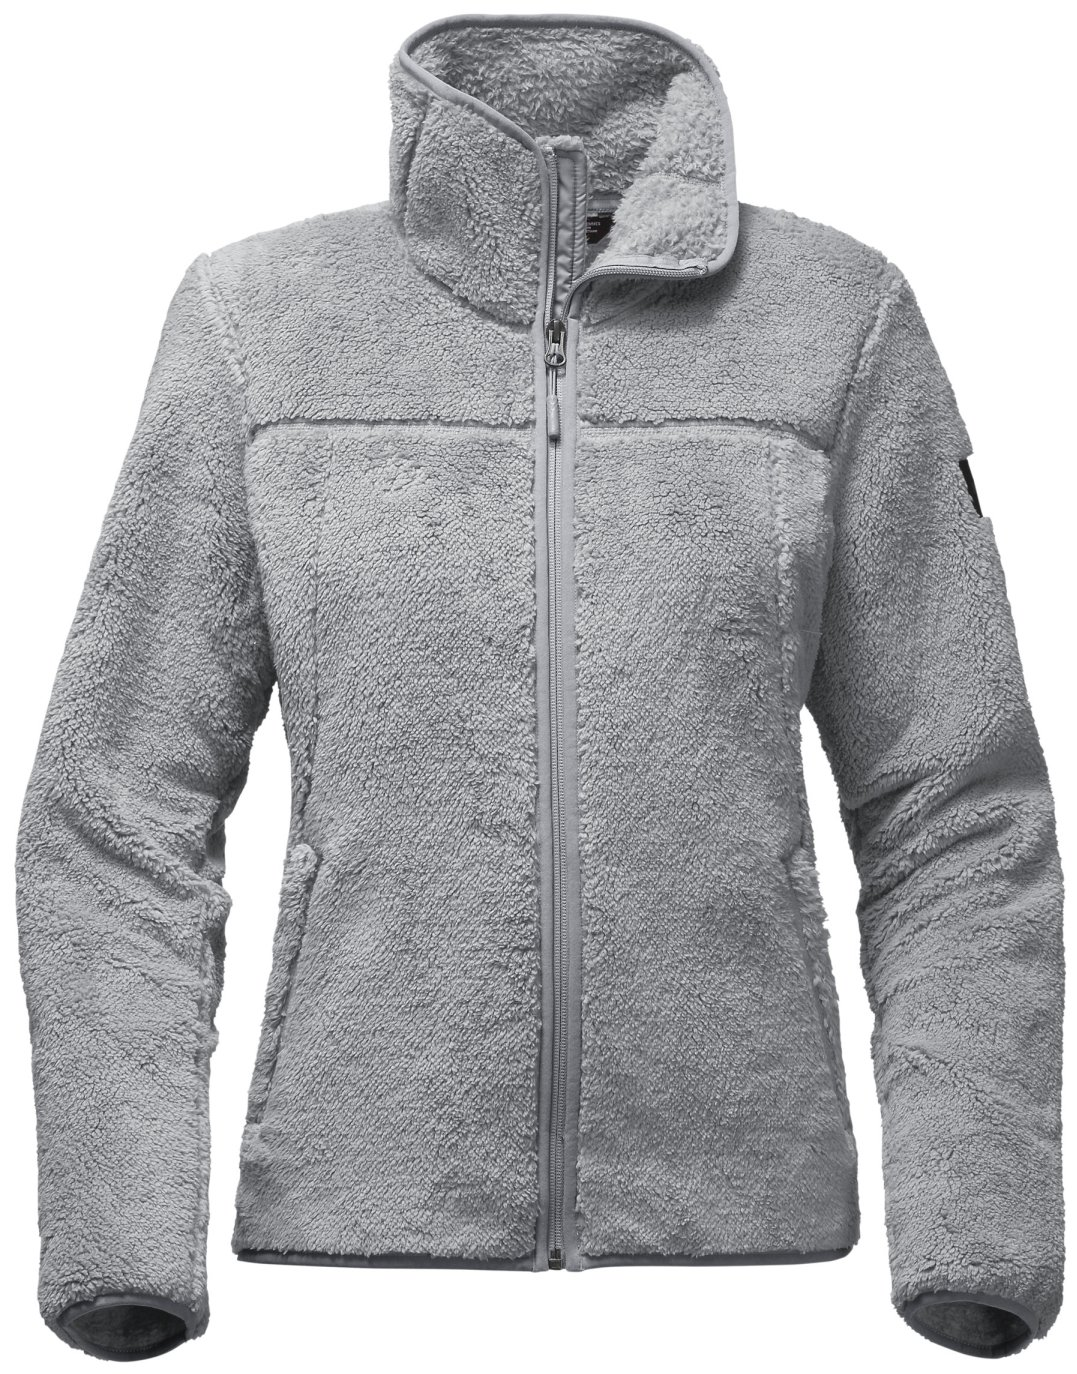 3f8ee8bf9 Amazon.com: The North Face Women's Campshire Full Zip: Clothing